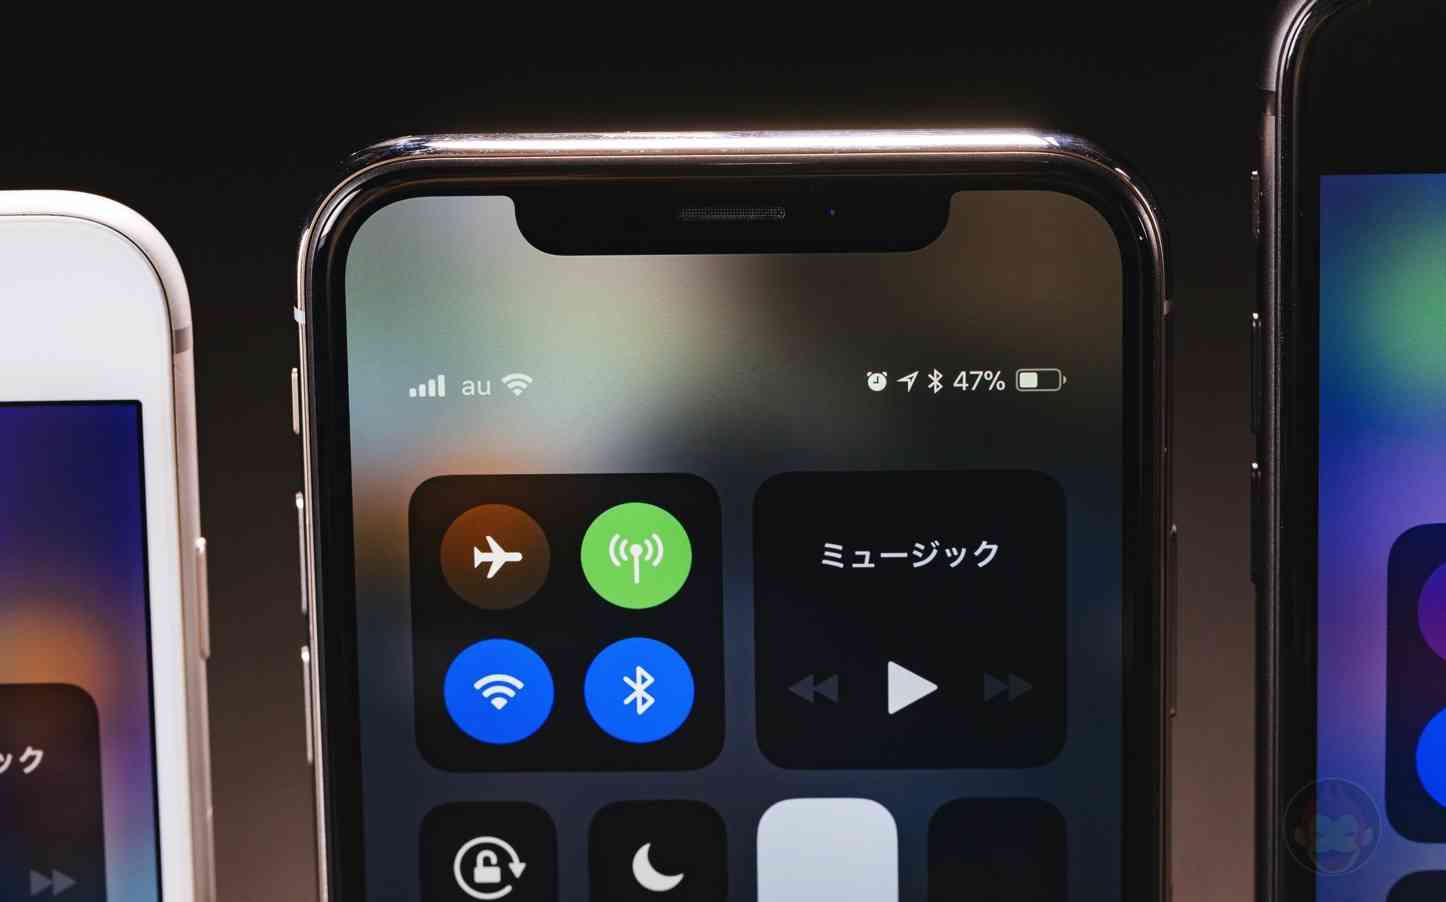 iPhone XSシリーズはバッテリーの%表示を廃止 確認する方法も